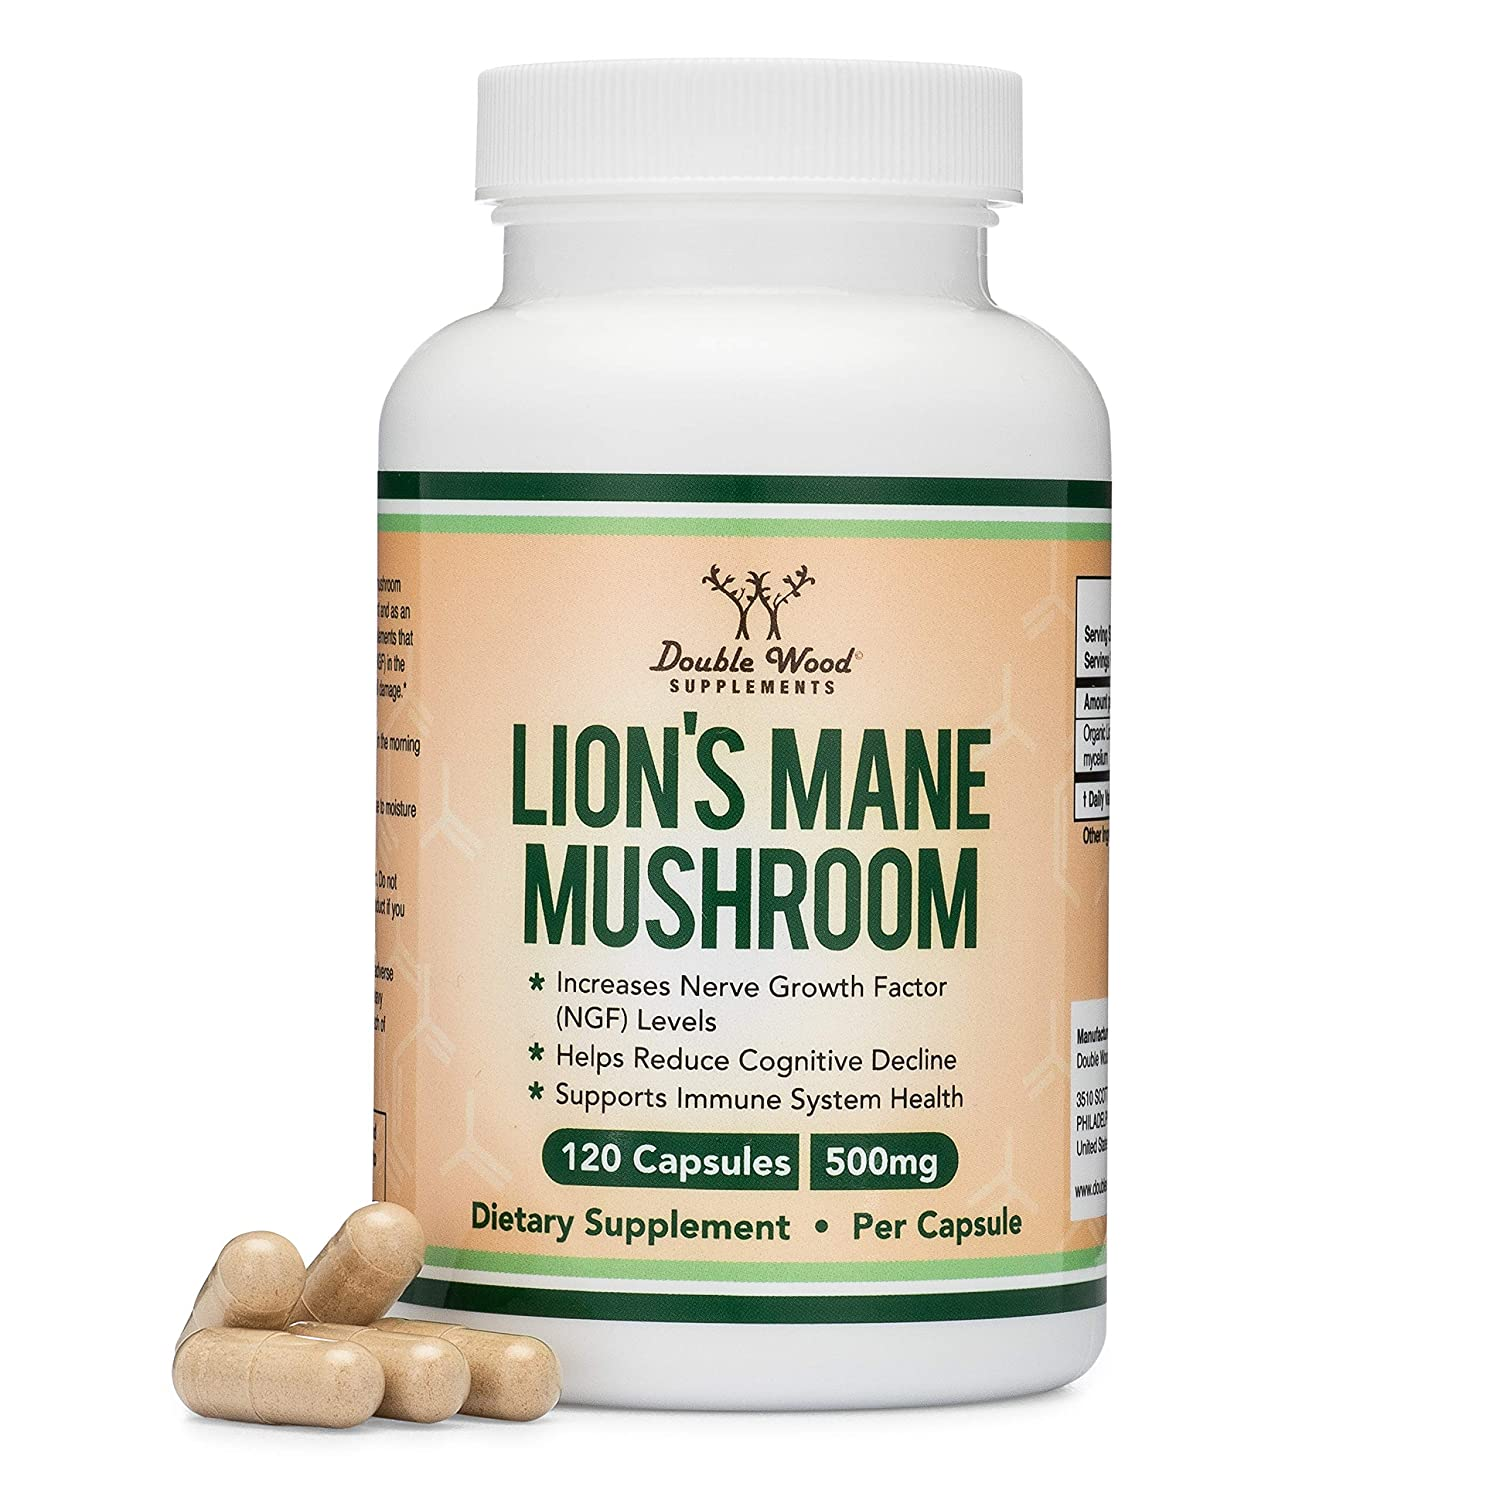 Lions Mane Mushroom Capsules (Two Month Supply - 120 Count) Organic and  Vegan Supplement - Nootropic for Brain Health and Growth, Immune Booster,  Made